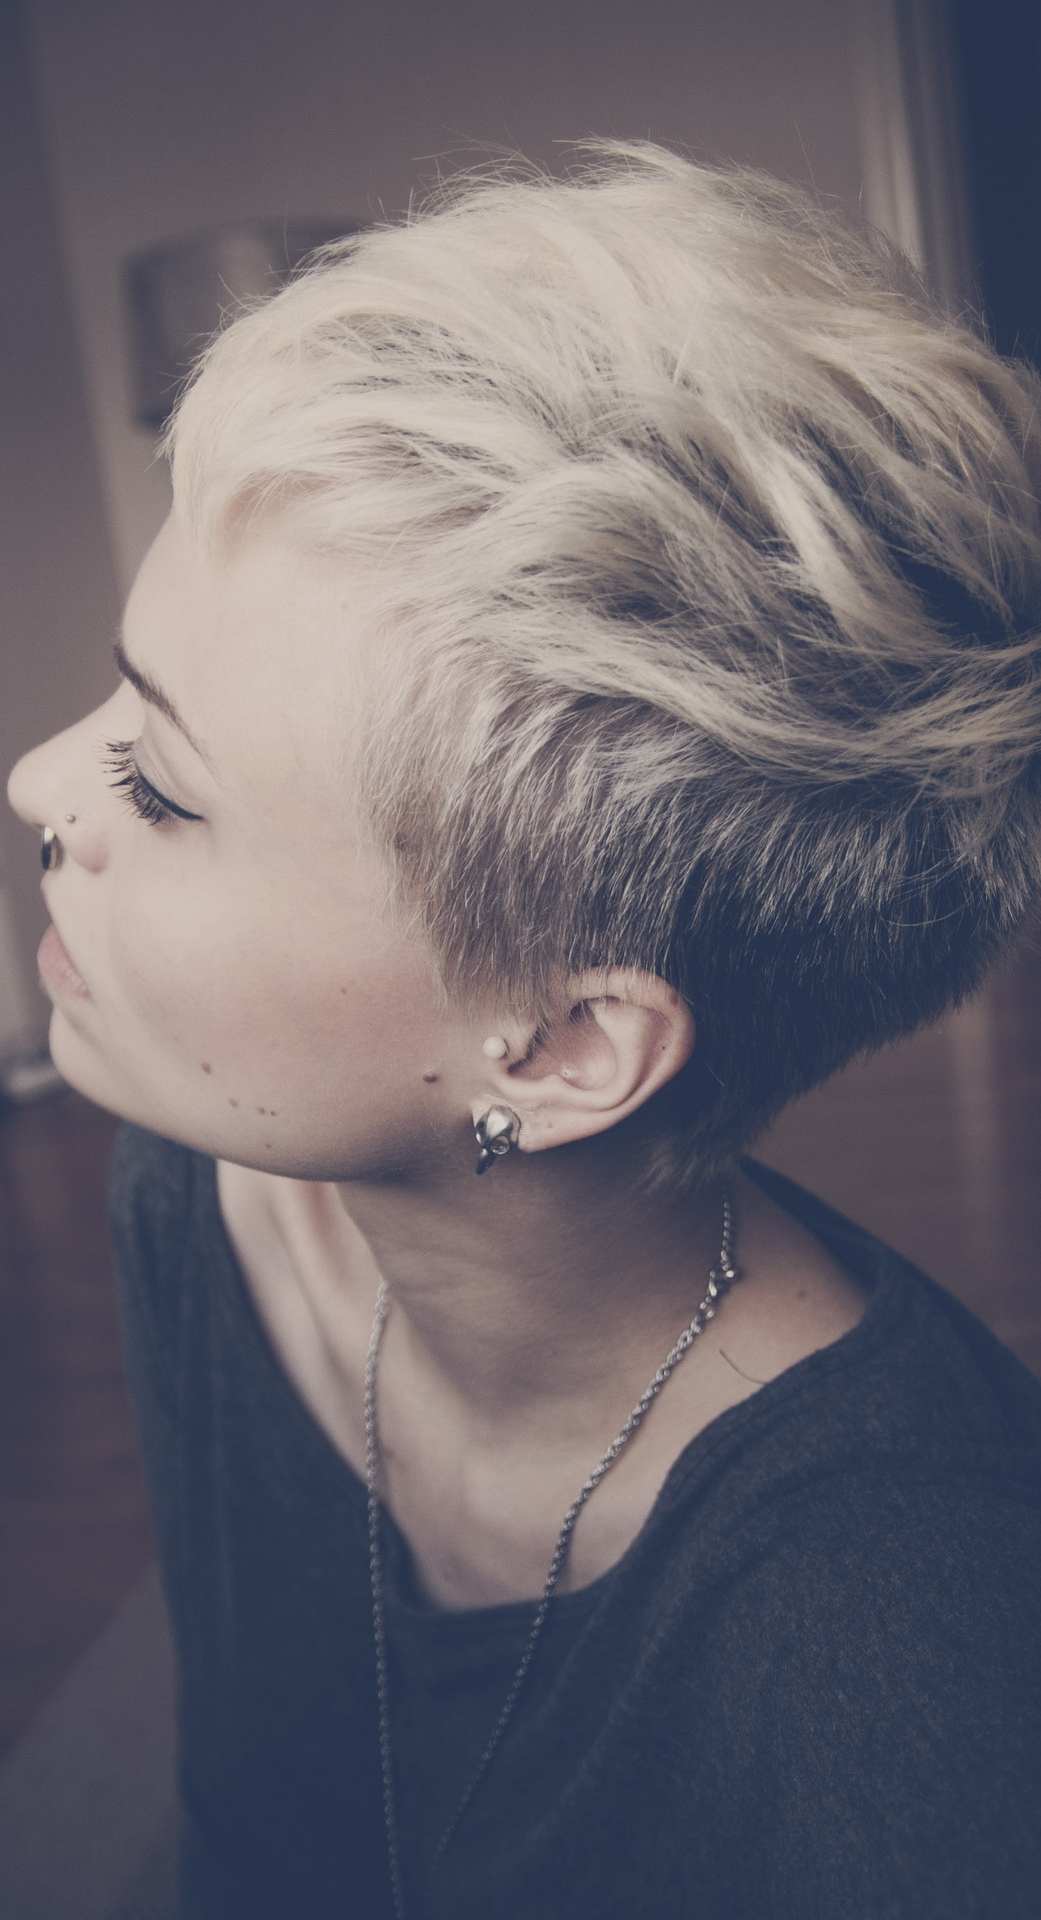 Photos Of Pixie Hairstyles With Shaved Sides Showing 8 Of 15 Photos